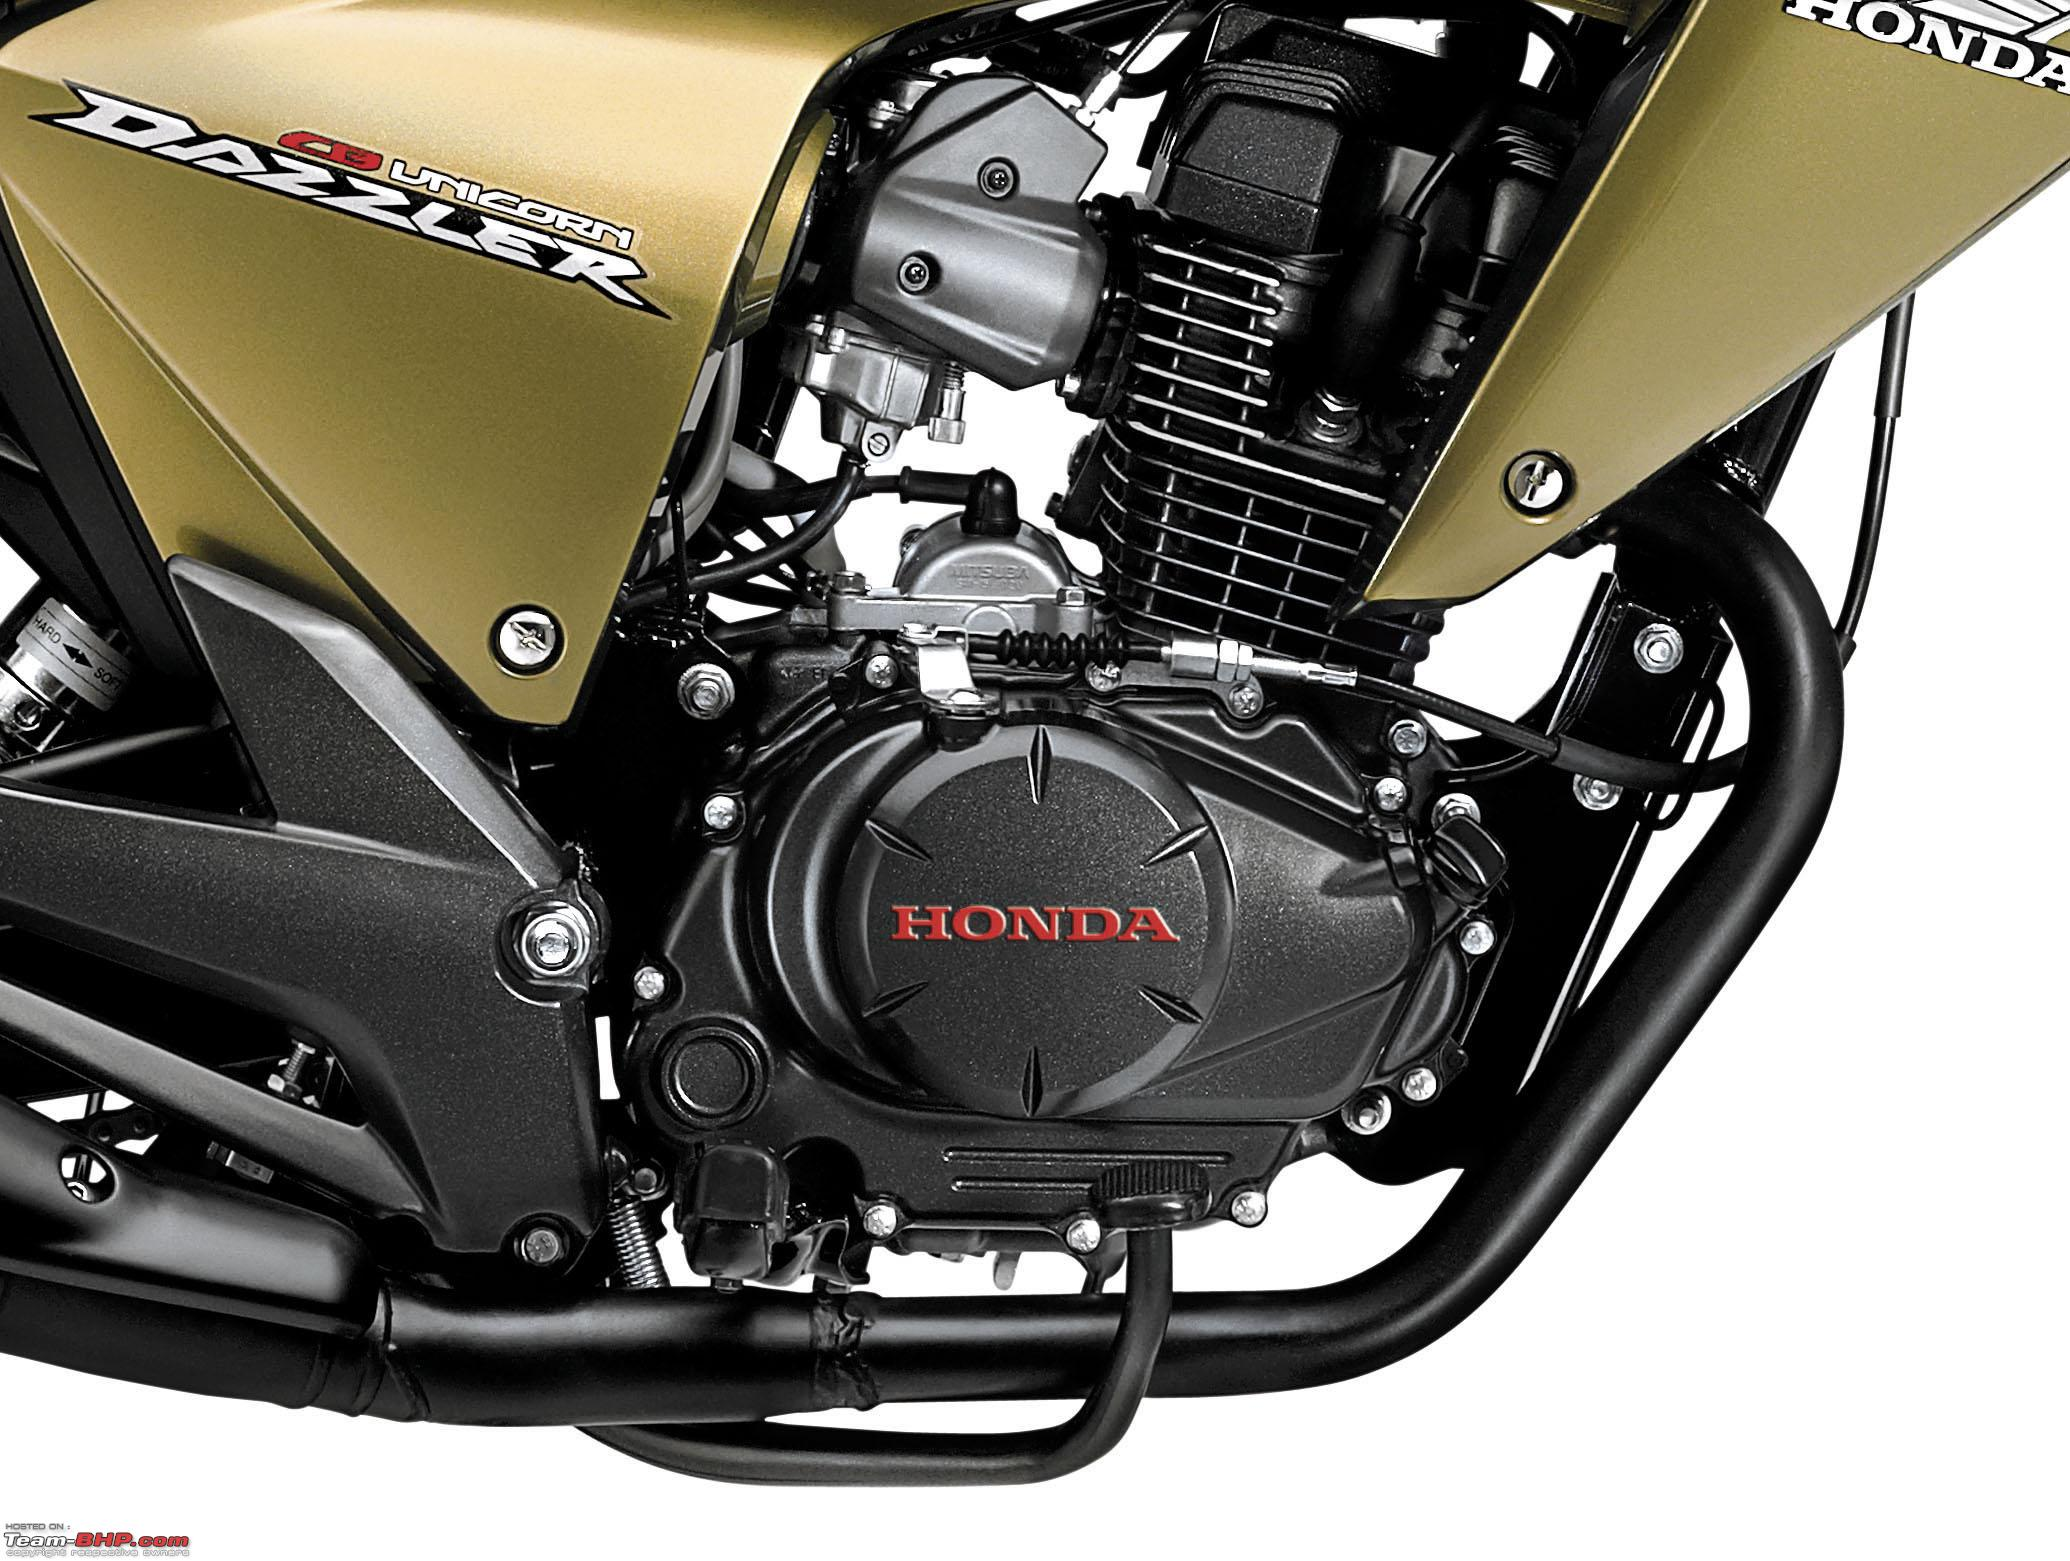 Honda cb unicorn dazzler first showroom spy pics and details 150cc engine